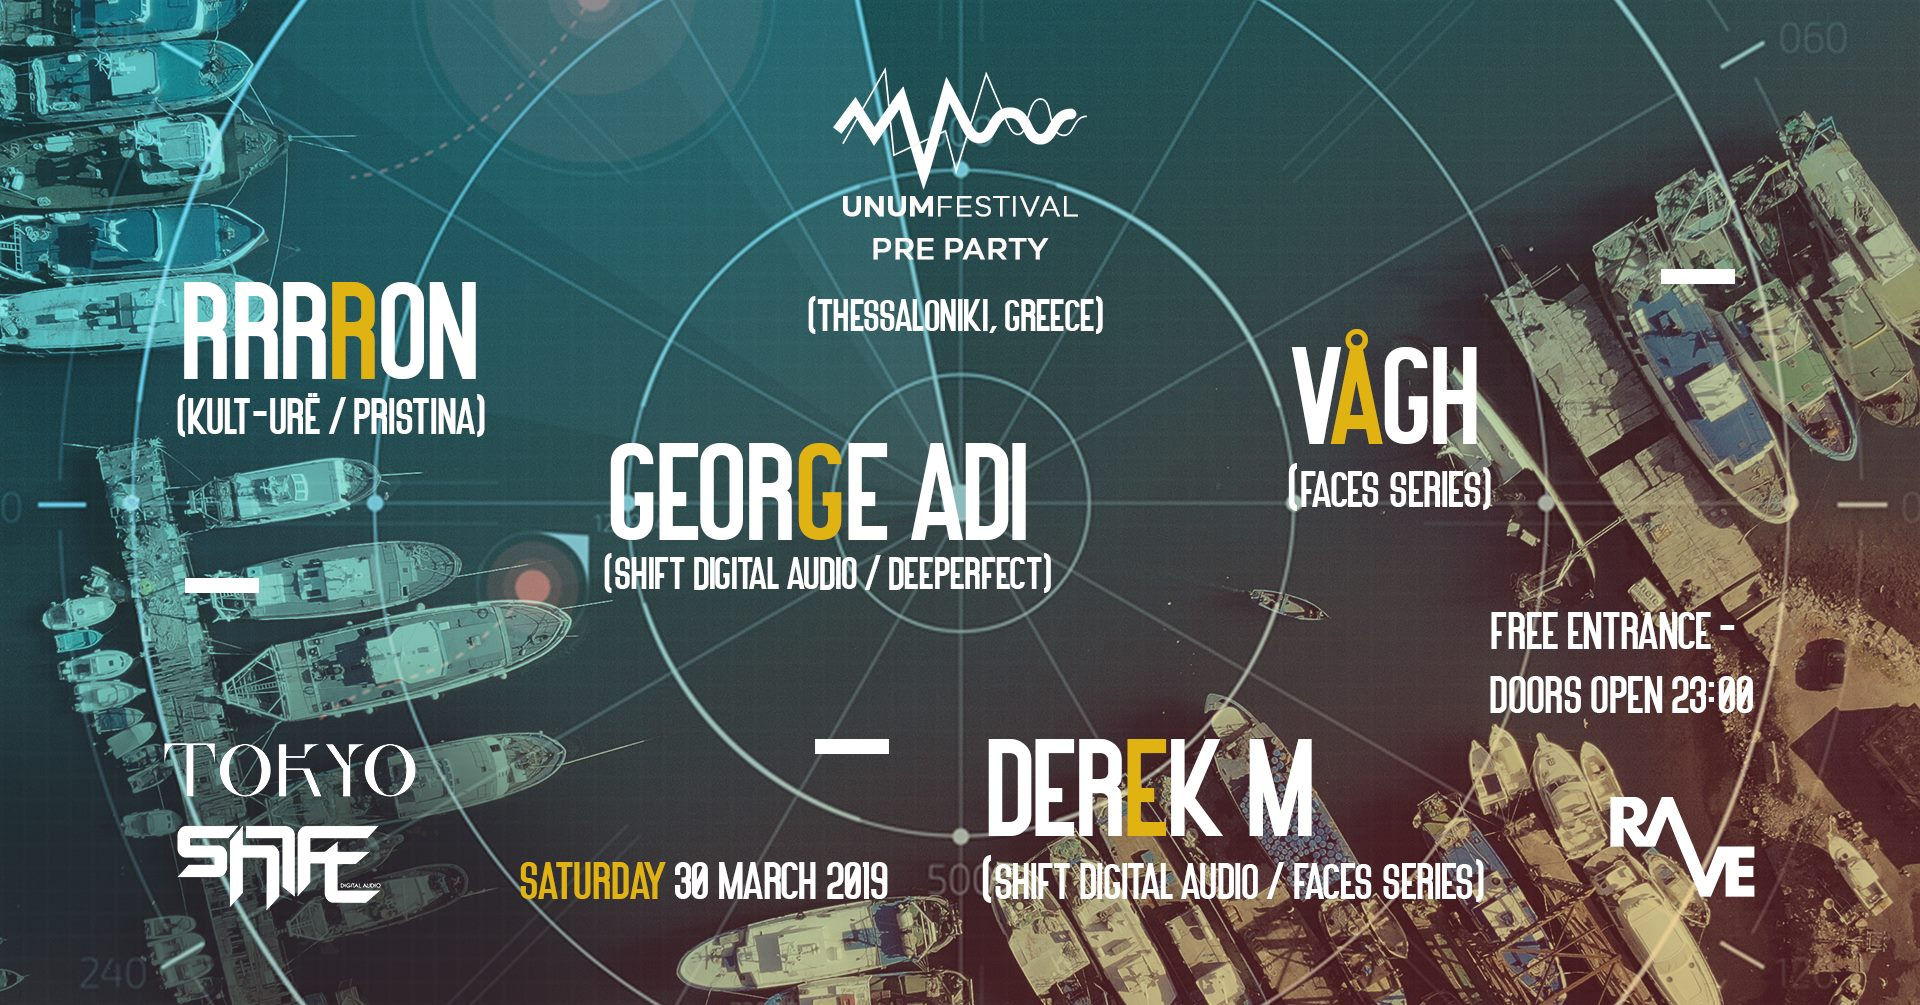 UNUM Pre-Party in Thessaloniki w/ Rrrron, George Adi, Vagh & Derek M